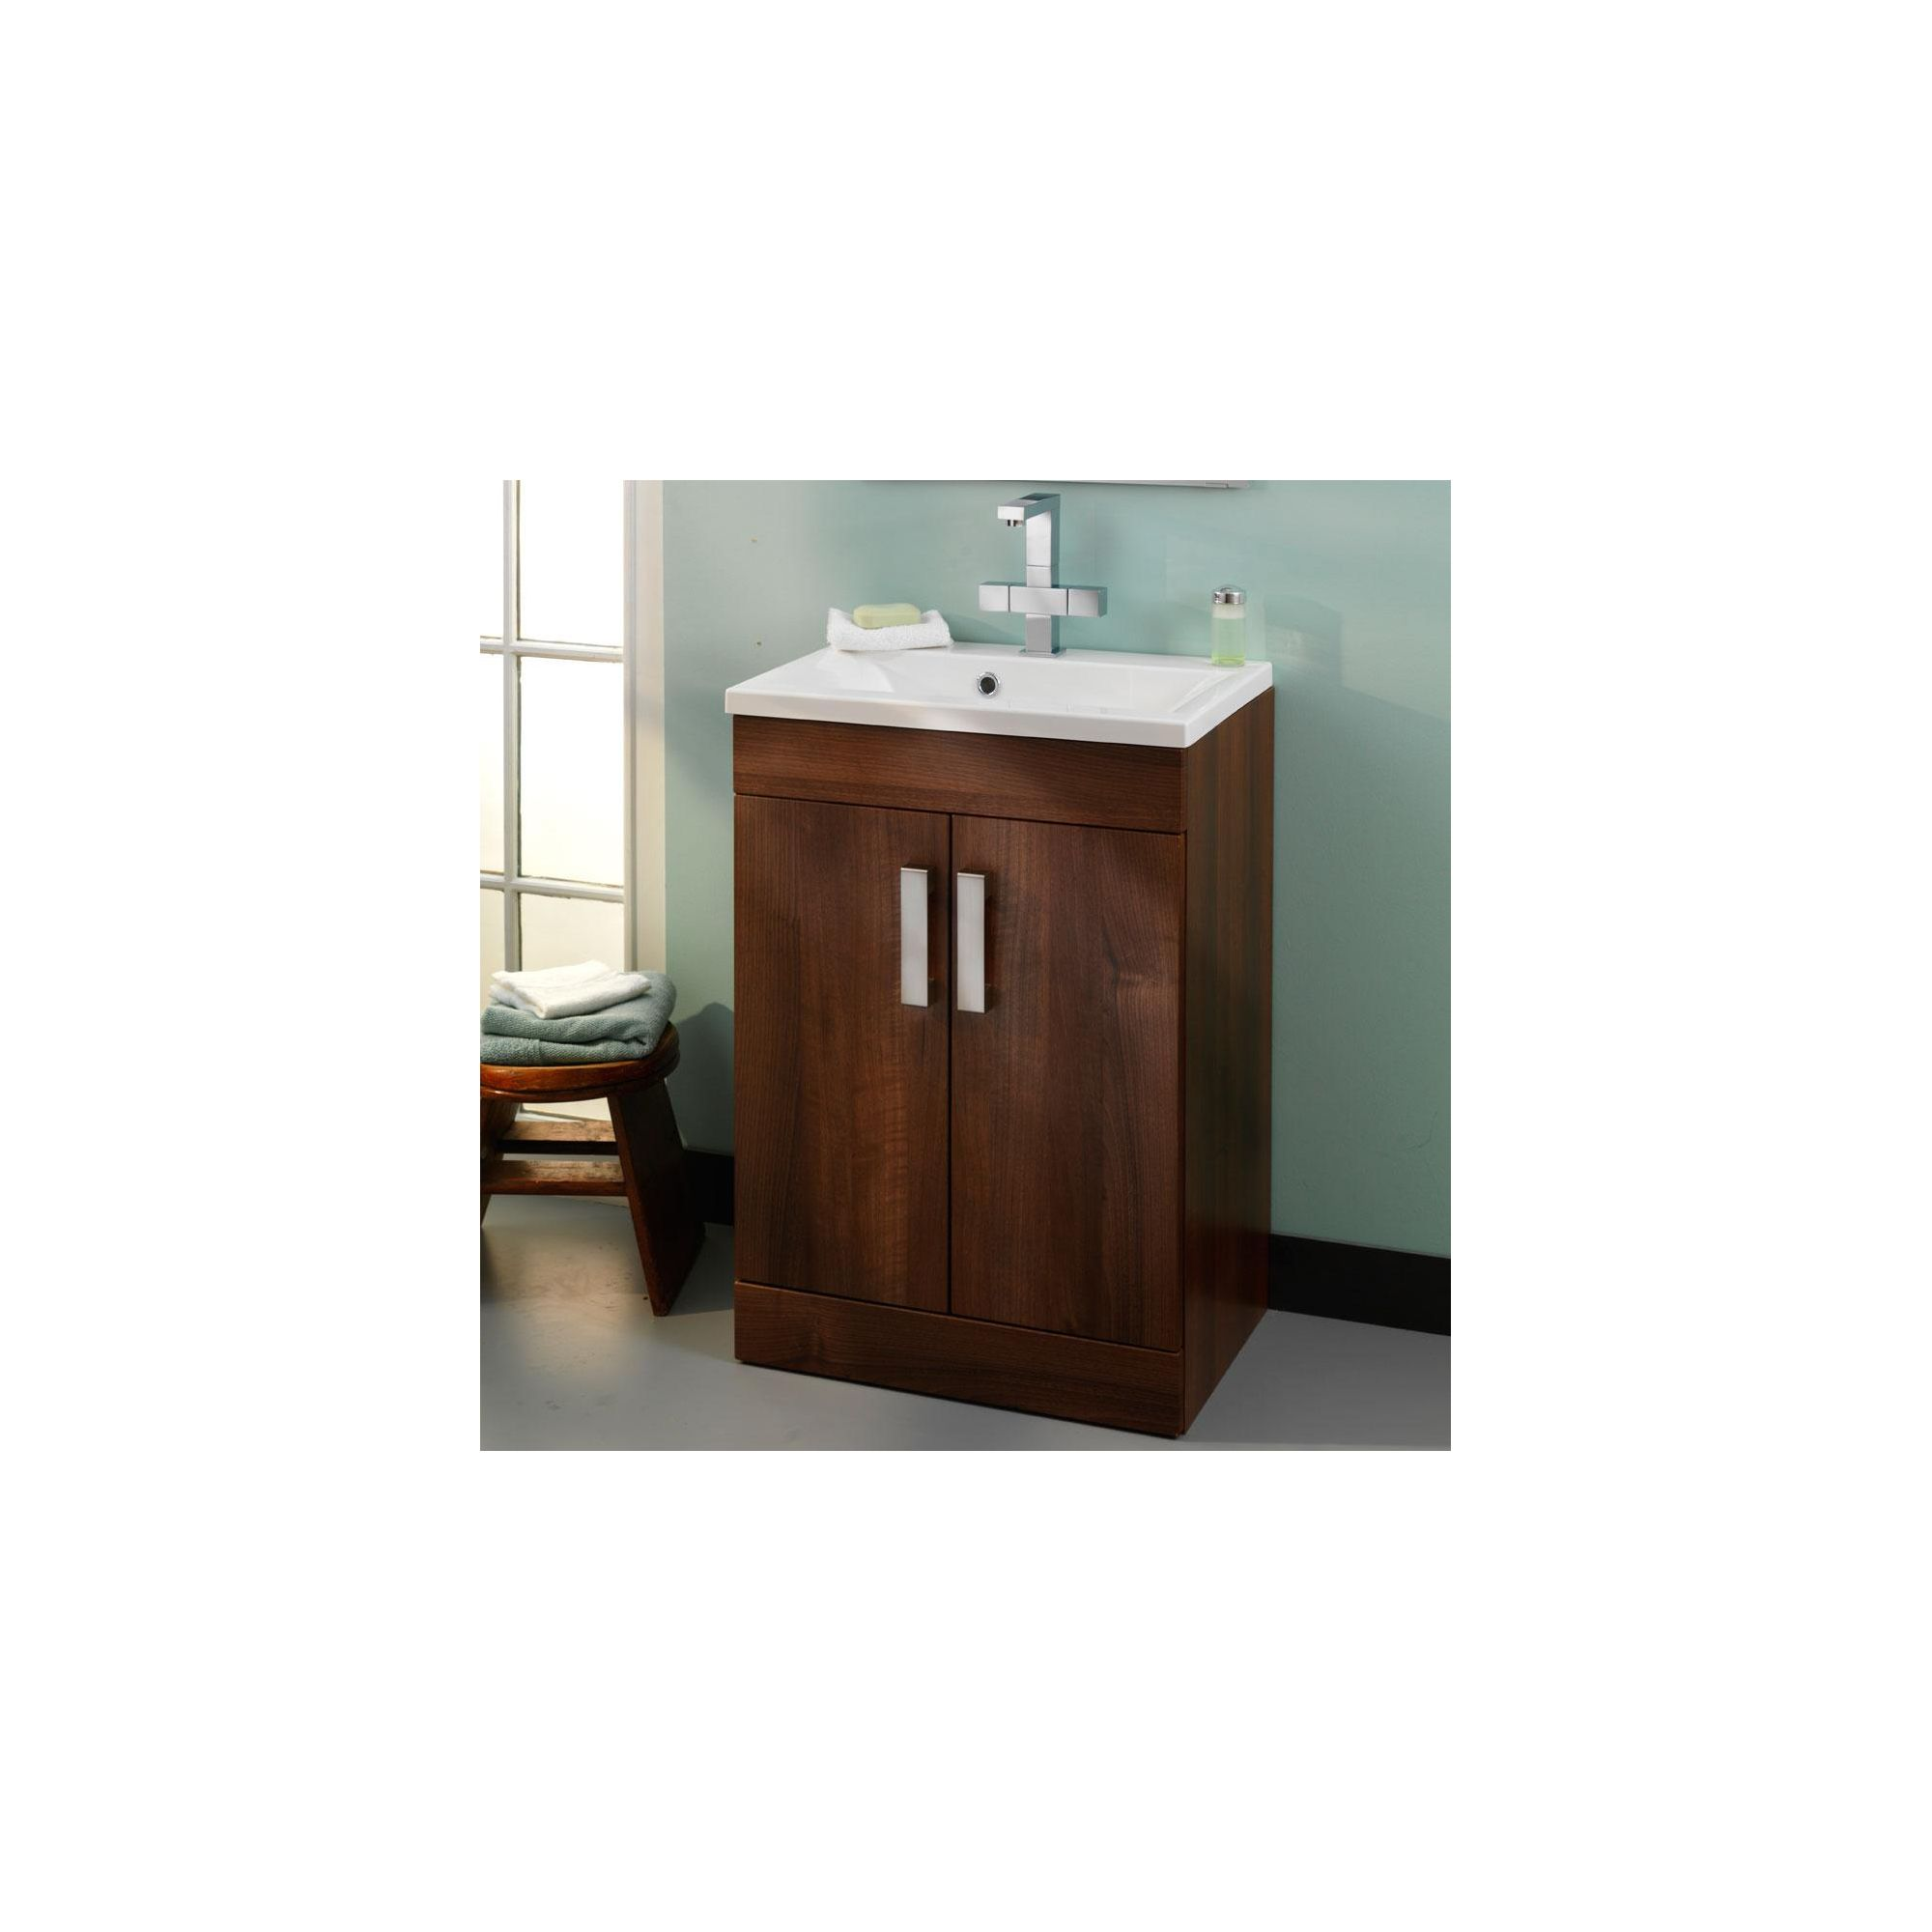 Duchy Tredrea Walnut Floor Standing 2 Door Vanity Unit and Basin - 580mm Wide x 393mm Deep